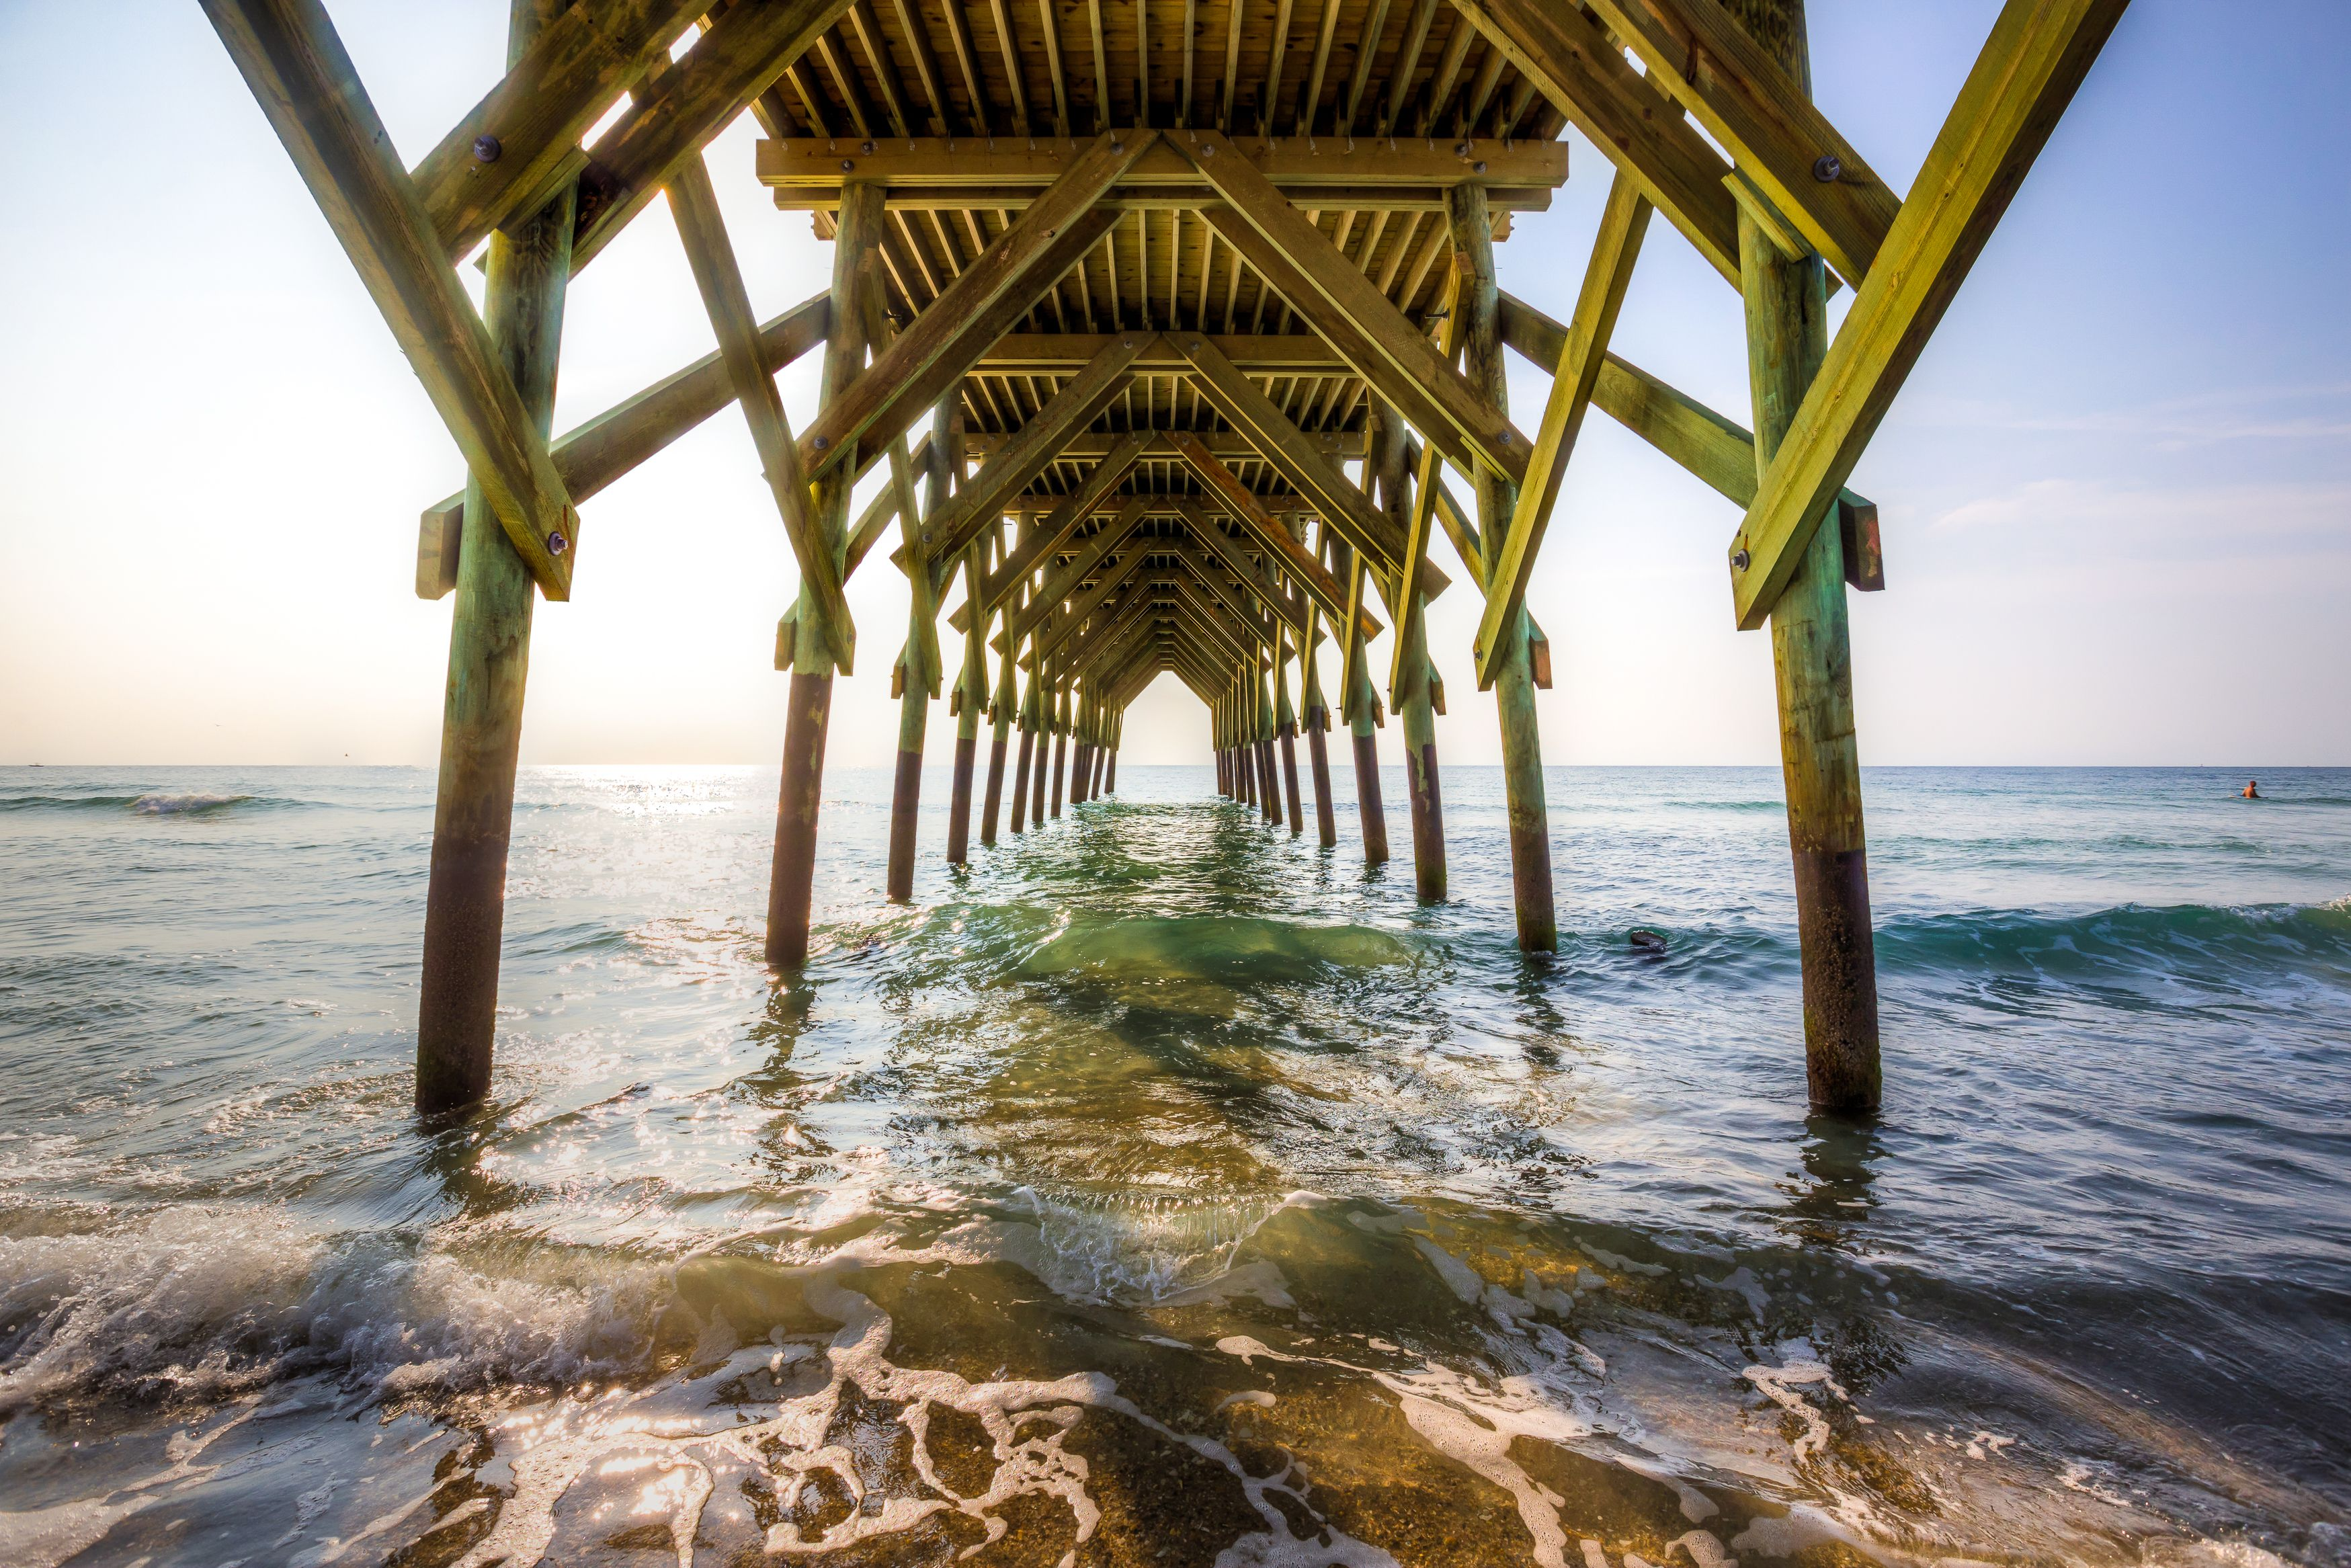 Oceanic Pier Wrightsville Beach Photo Uncw  Literally Everything  Oceanic Pier Wrightsville Beach Photo Uncw Essay About Learning English Language also Term Papers And Essays  How To Use A Thesis Statement In An Essay